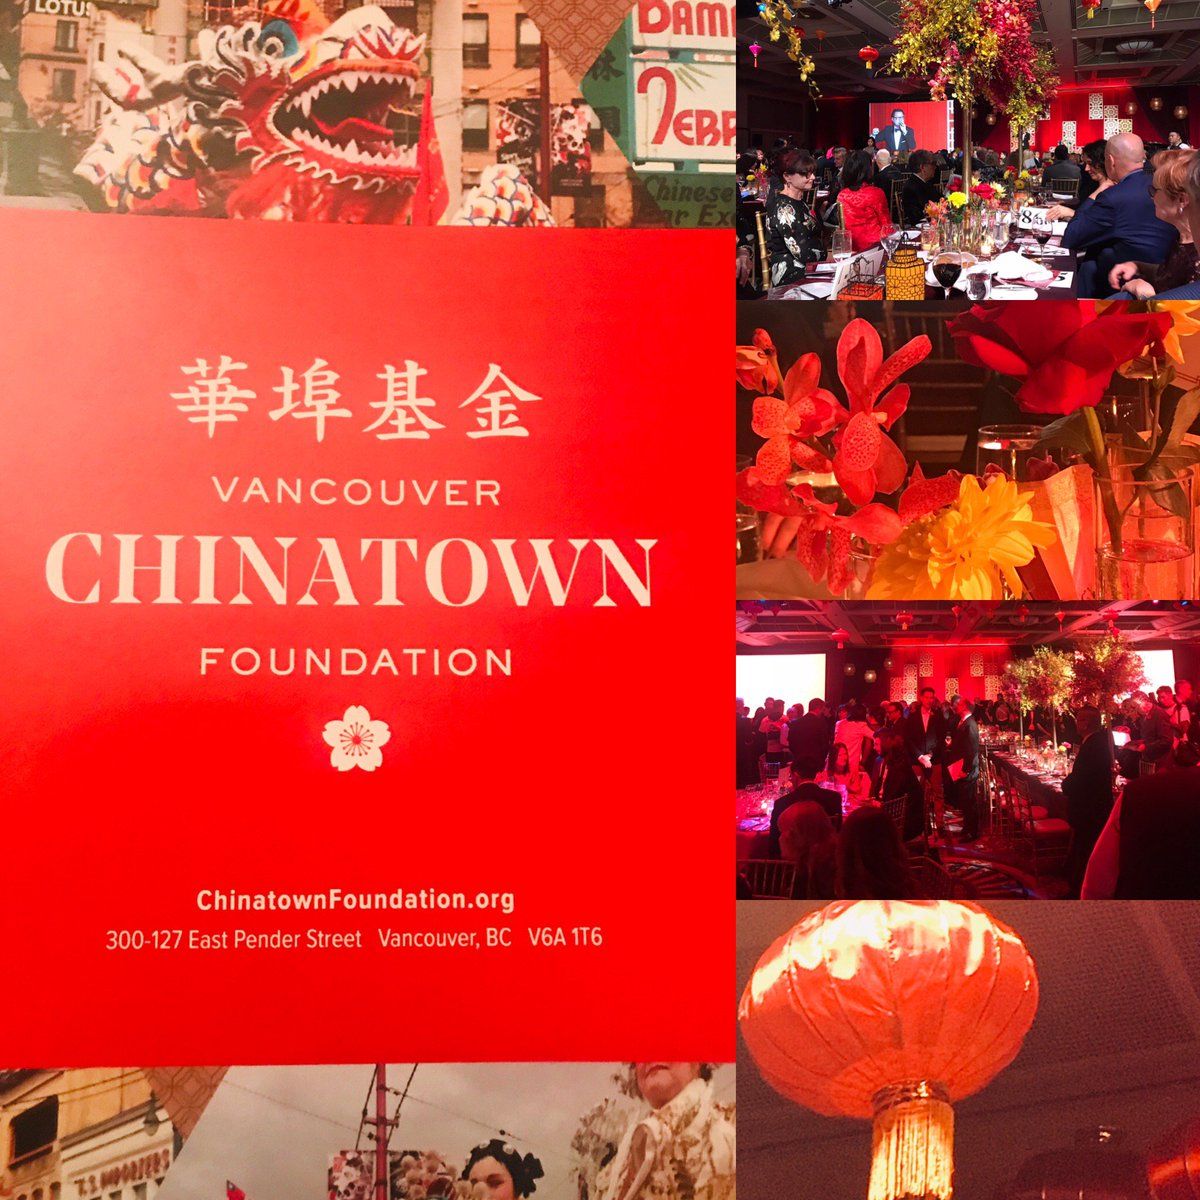 What an amazing night for #vancouver. I was just at my first Autumn Gala for the Vancouver Chinatown Foundation @VanChinatownFdn and I was completely blown away by the support and the true belief in what we can do as a community. #govancouver #communitypic.twitter.com/Ehiu5ixlnA